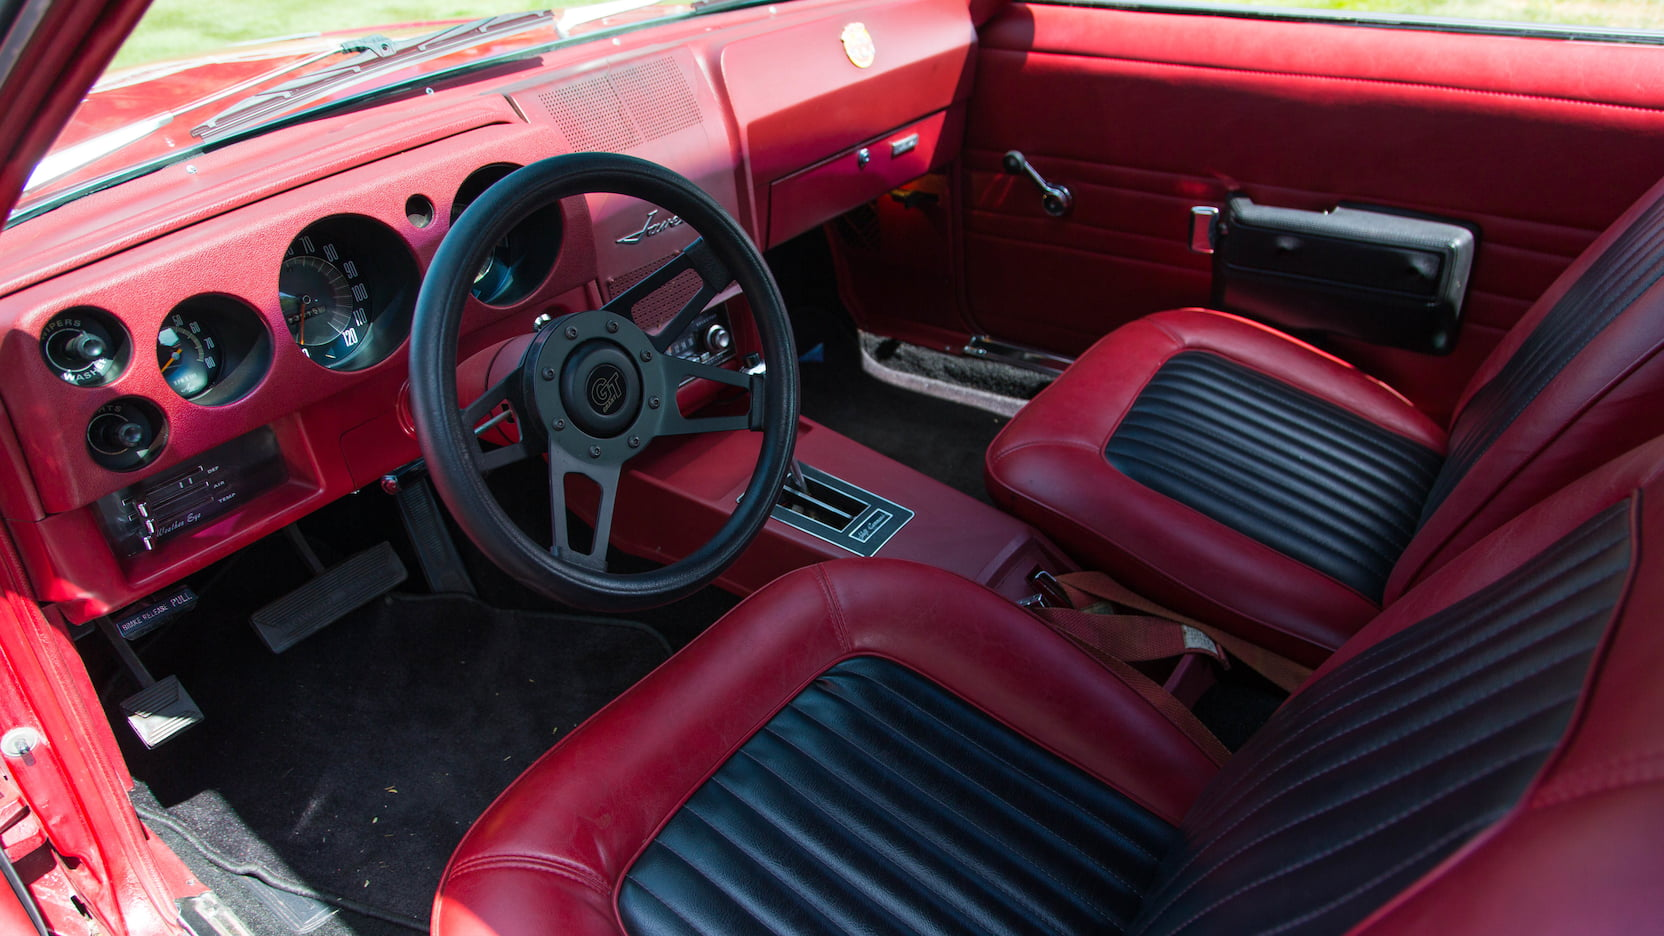 1968 AMC Javelin interior